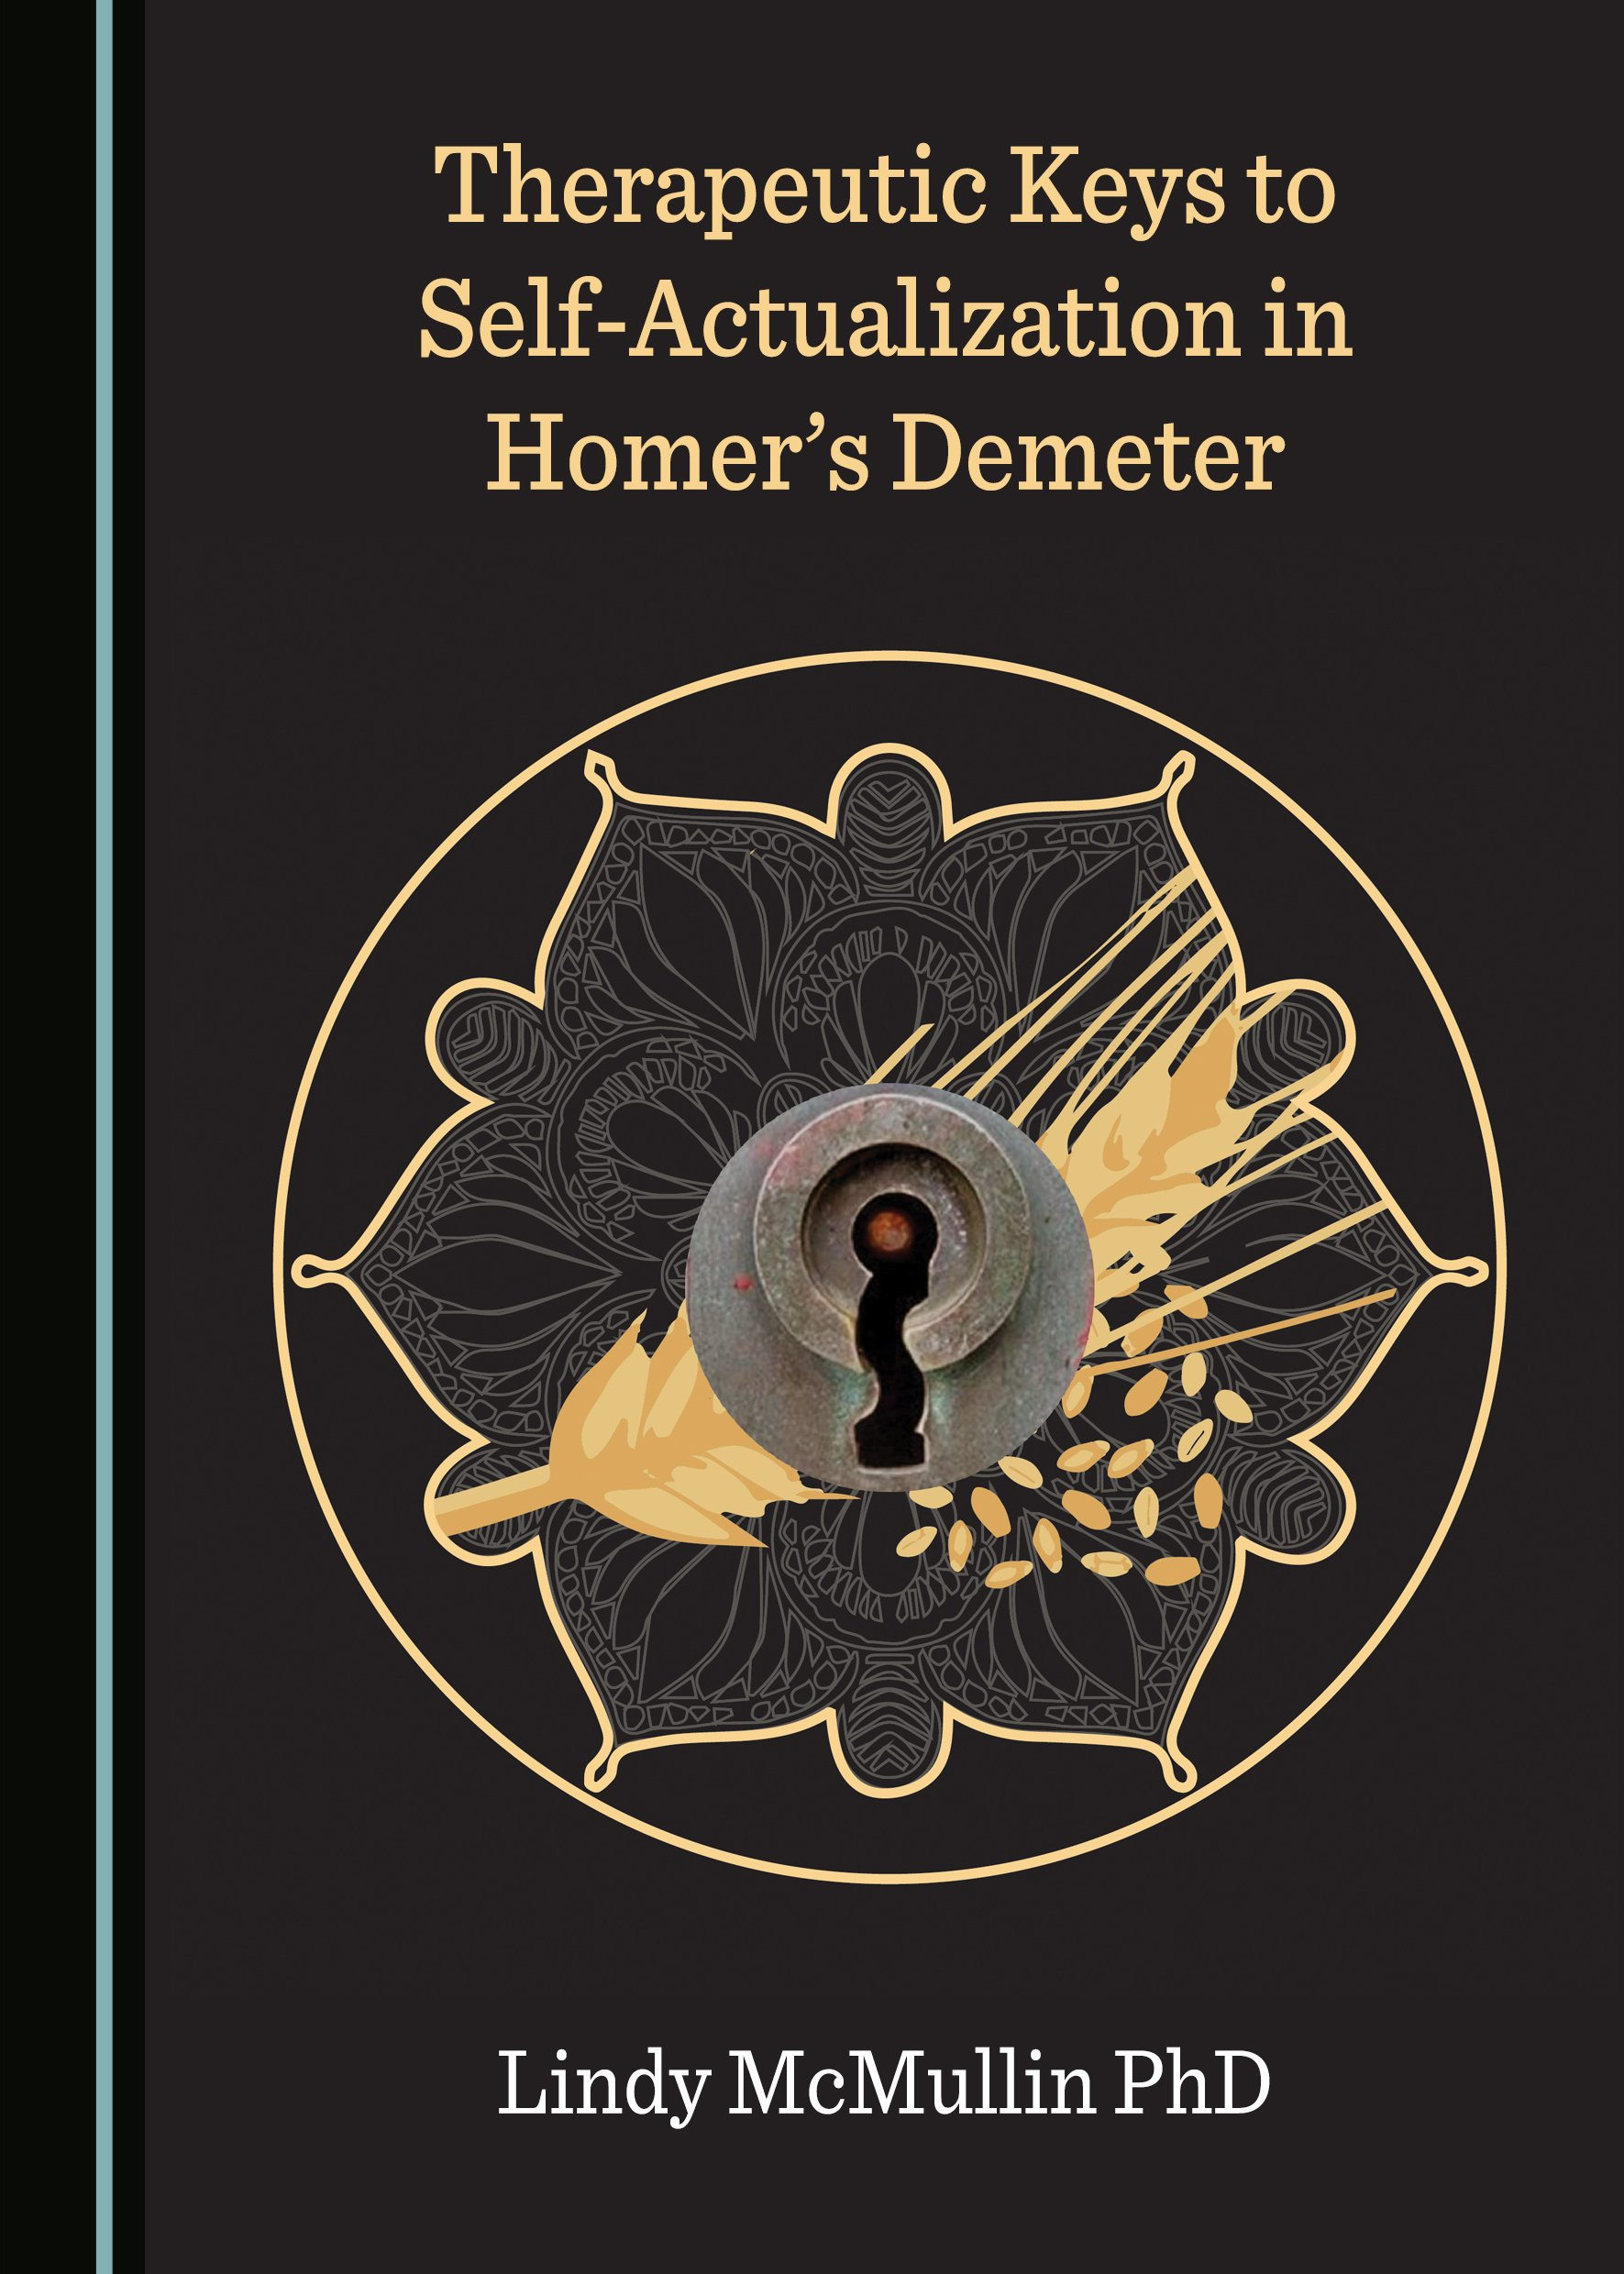 Therapeutic Keys to Self-Actualization in Homer's Demeter